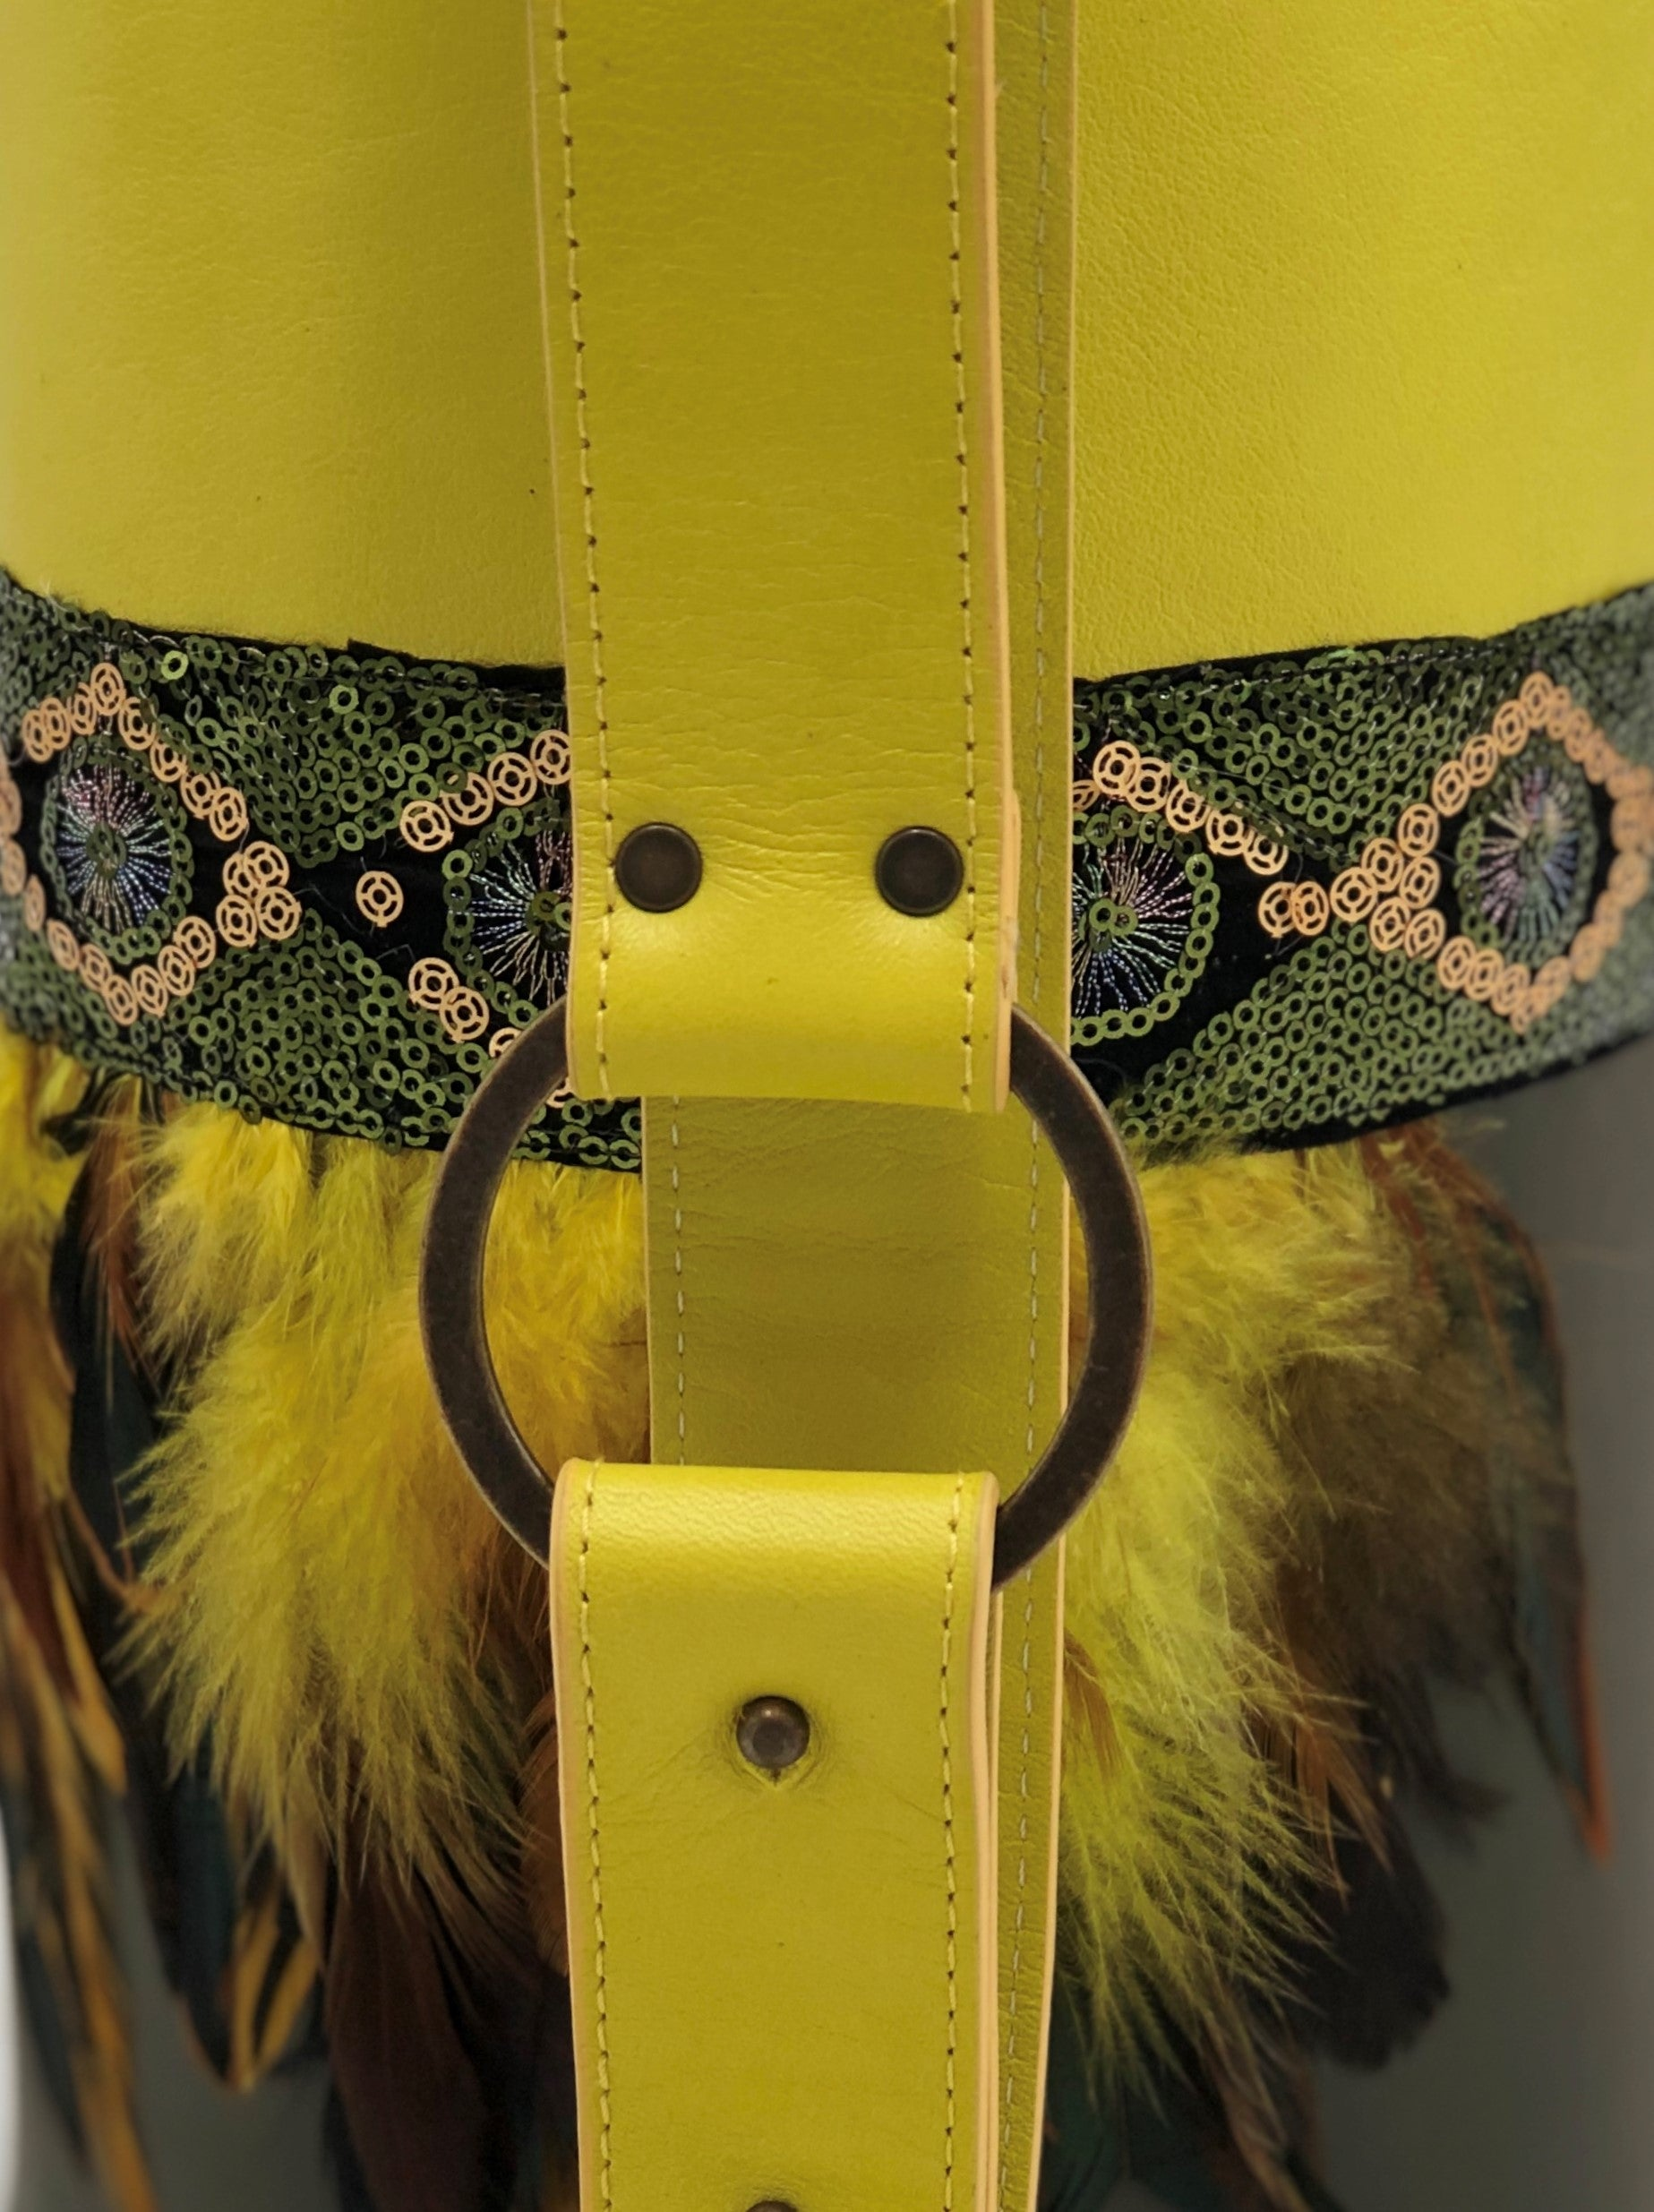 "Neon yellow & green leather bag with feathers. ""Neon Forest""."